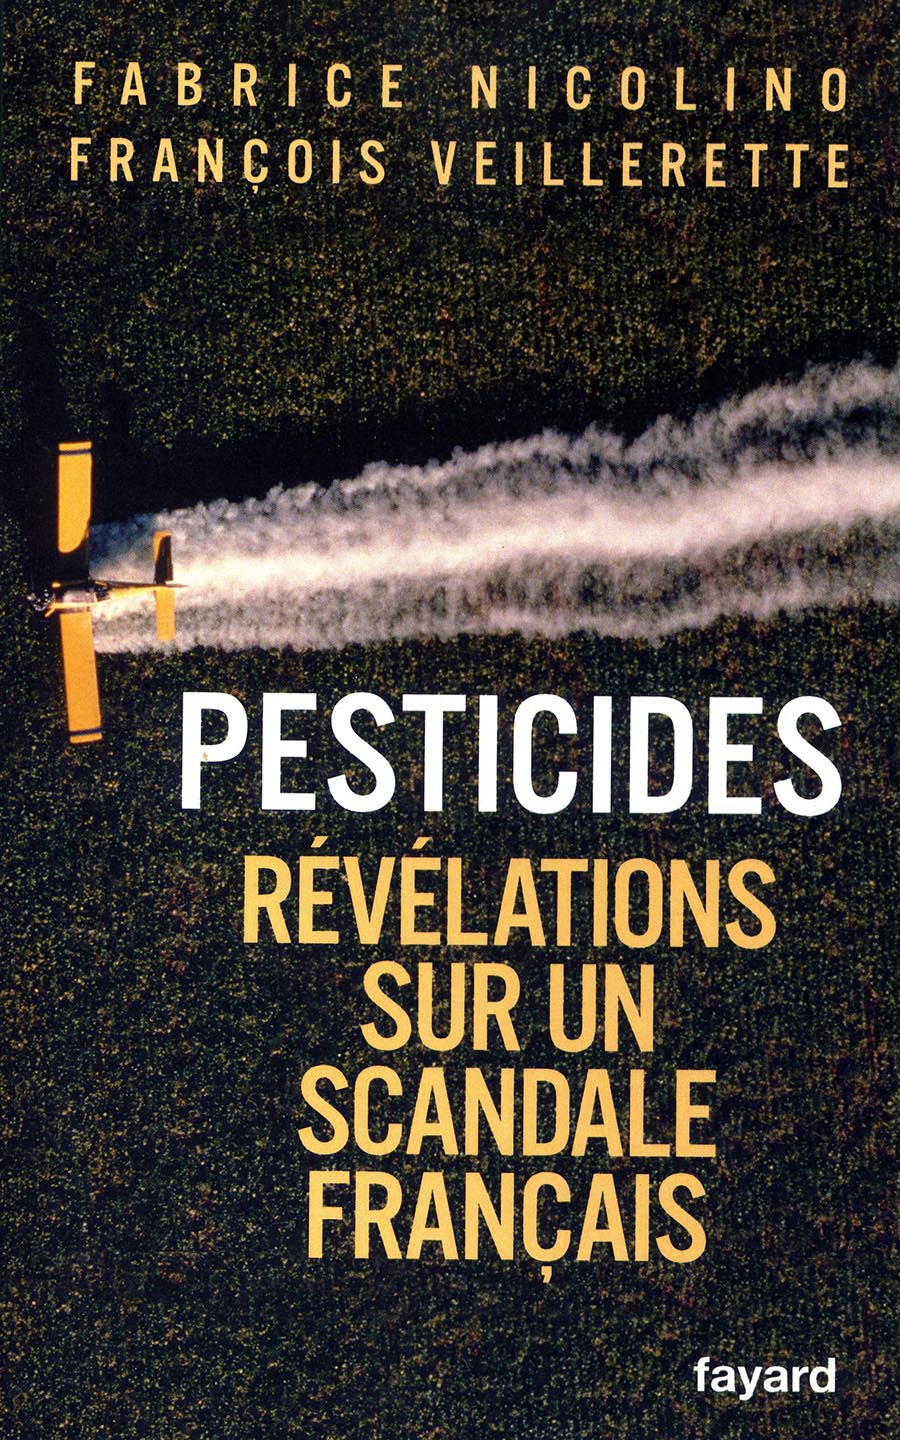 Pesticides revelations sur un scandale francais - Livre